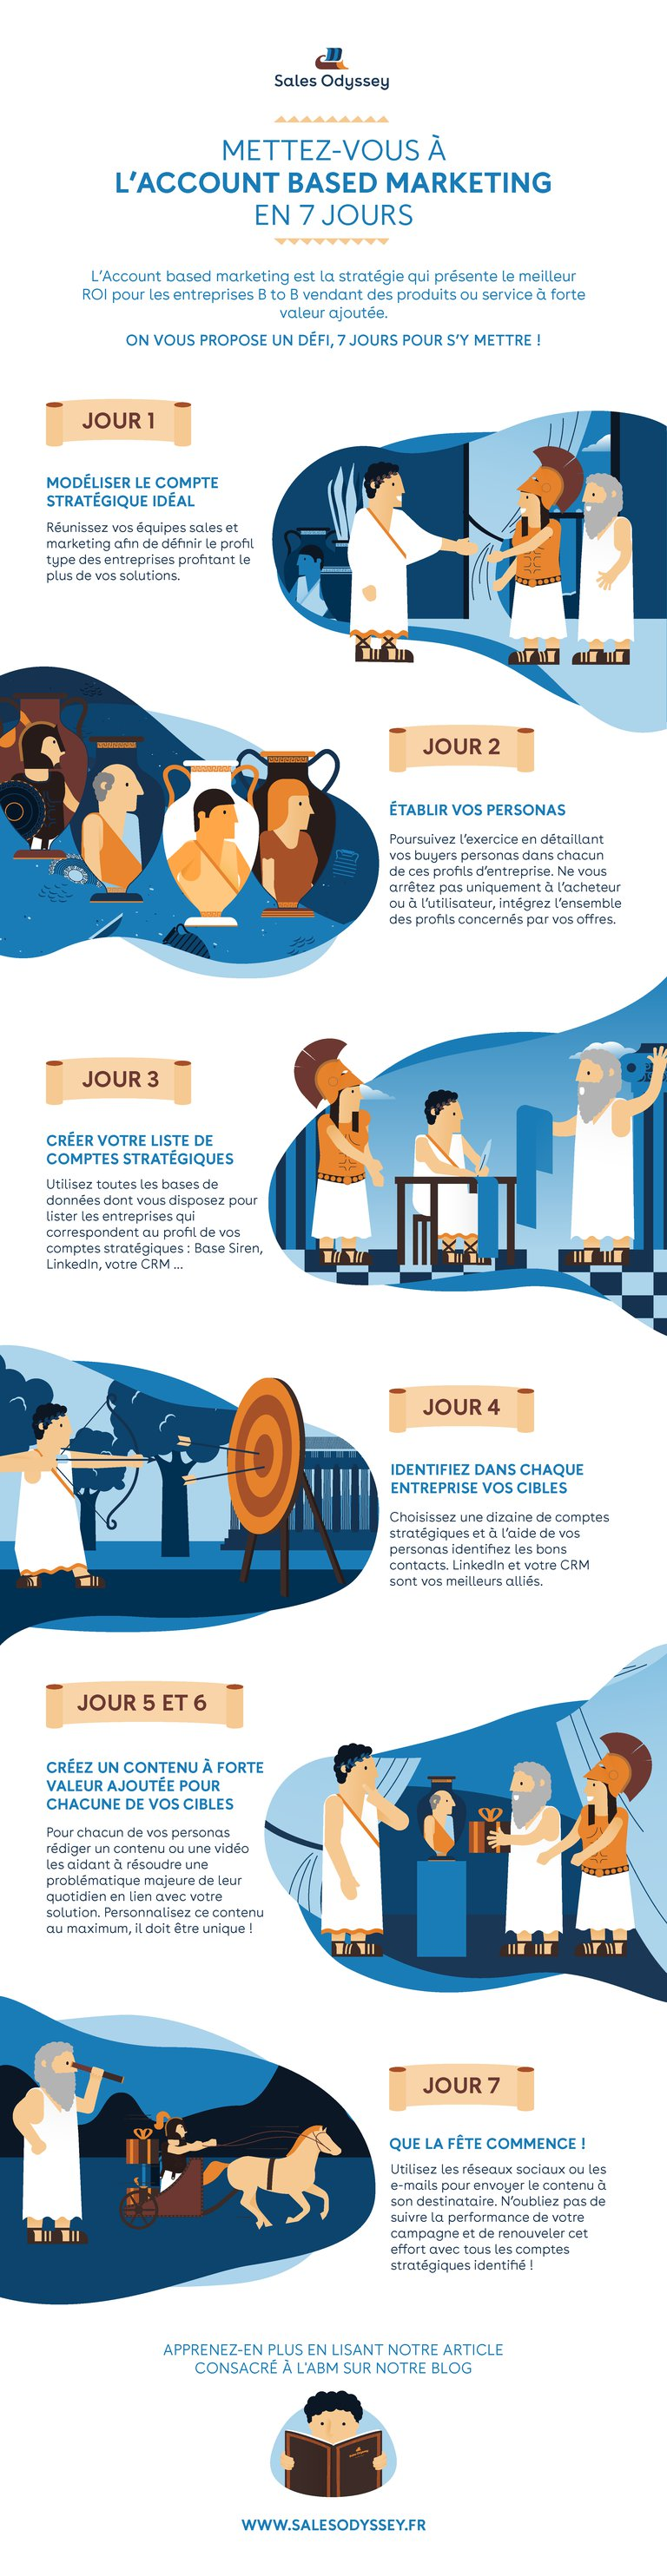 Infographie mettre en place l'Account based marketing